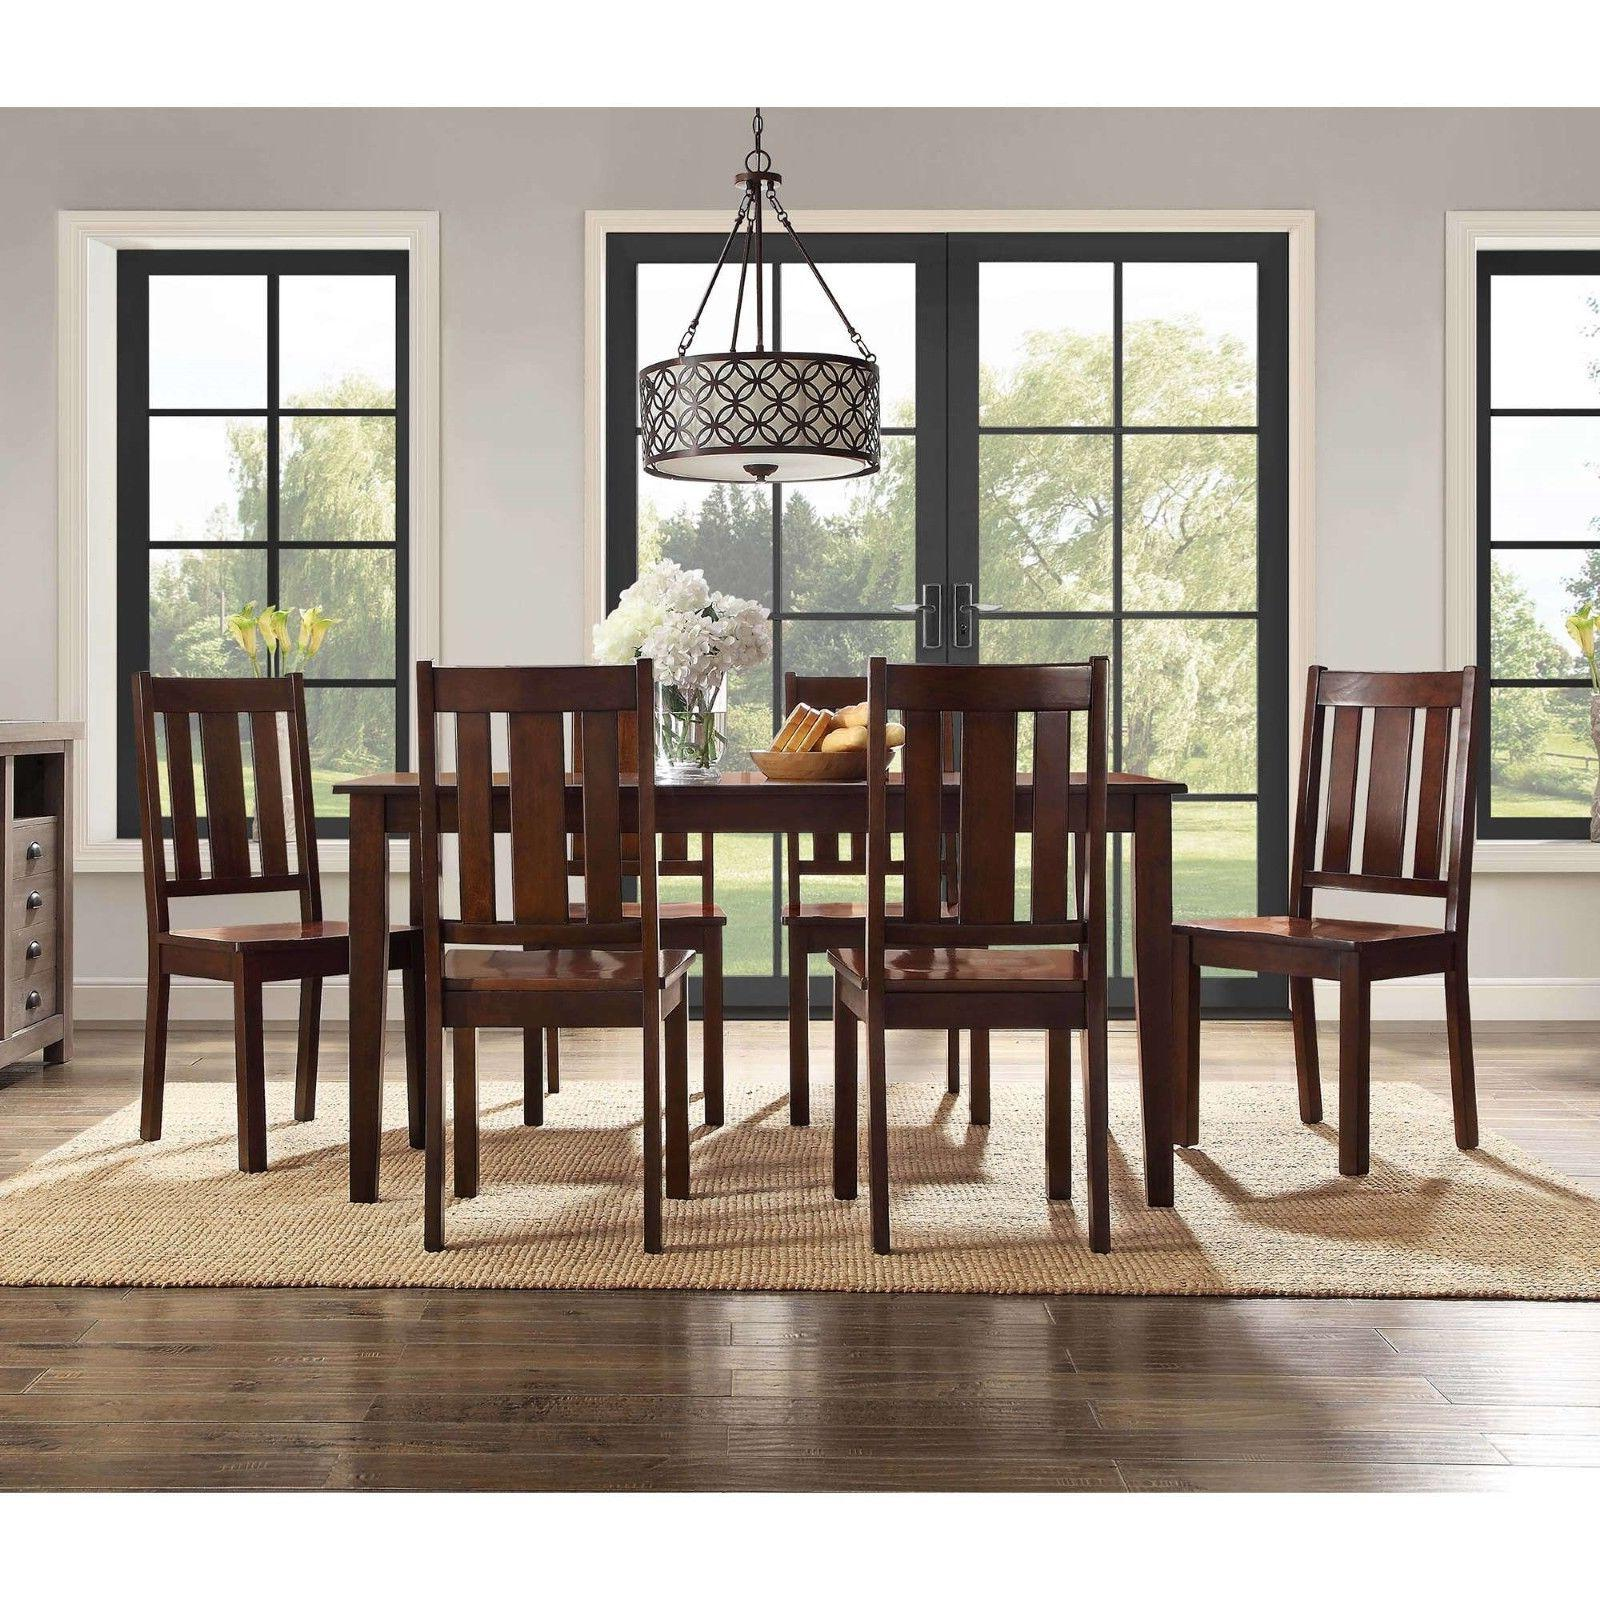 7 Set Home Chairs Solid Wood